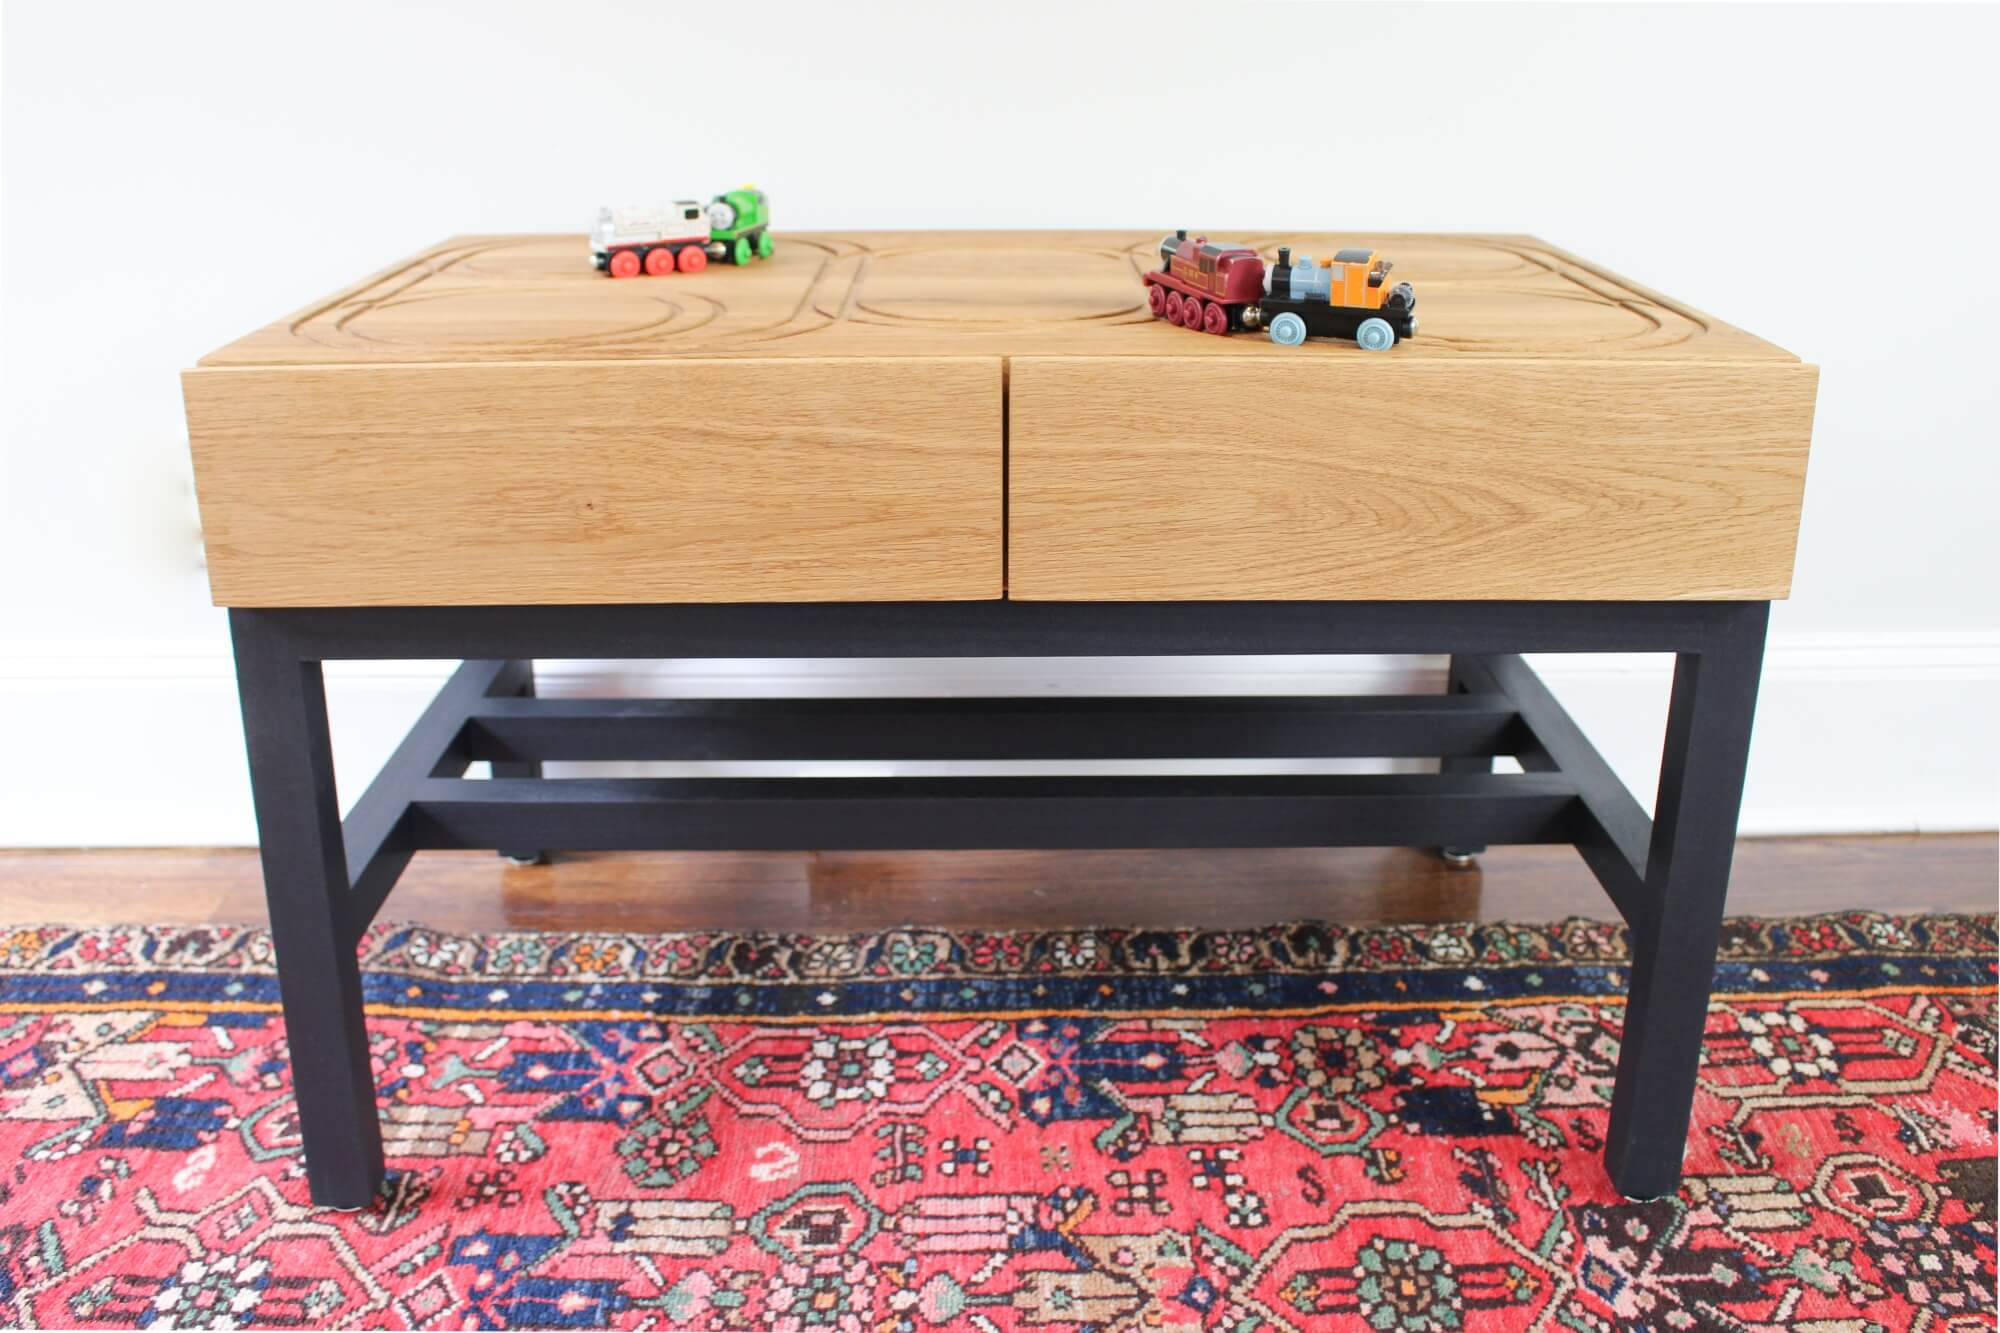 Hardwax oil finished wood train table.